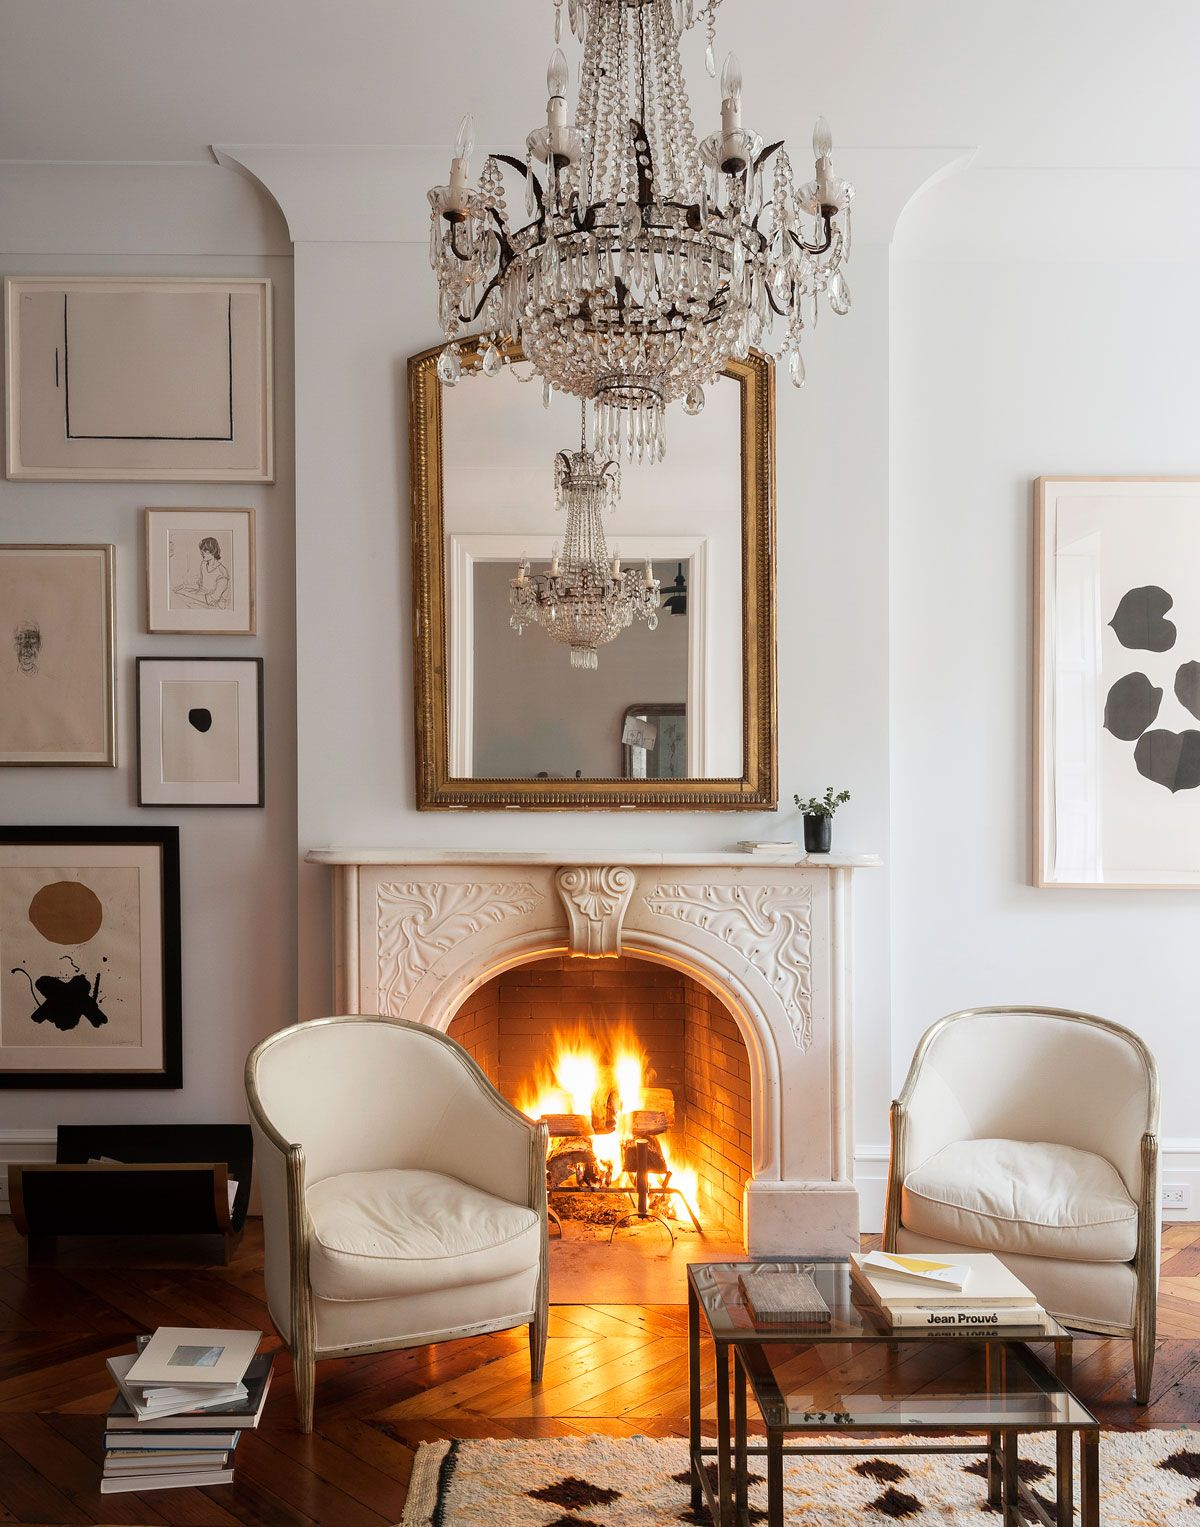 This historic New York brownstone has been brought into the 21st century with a bang